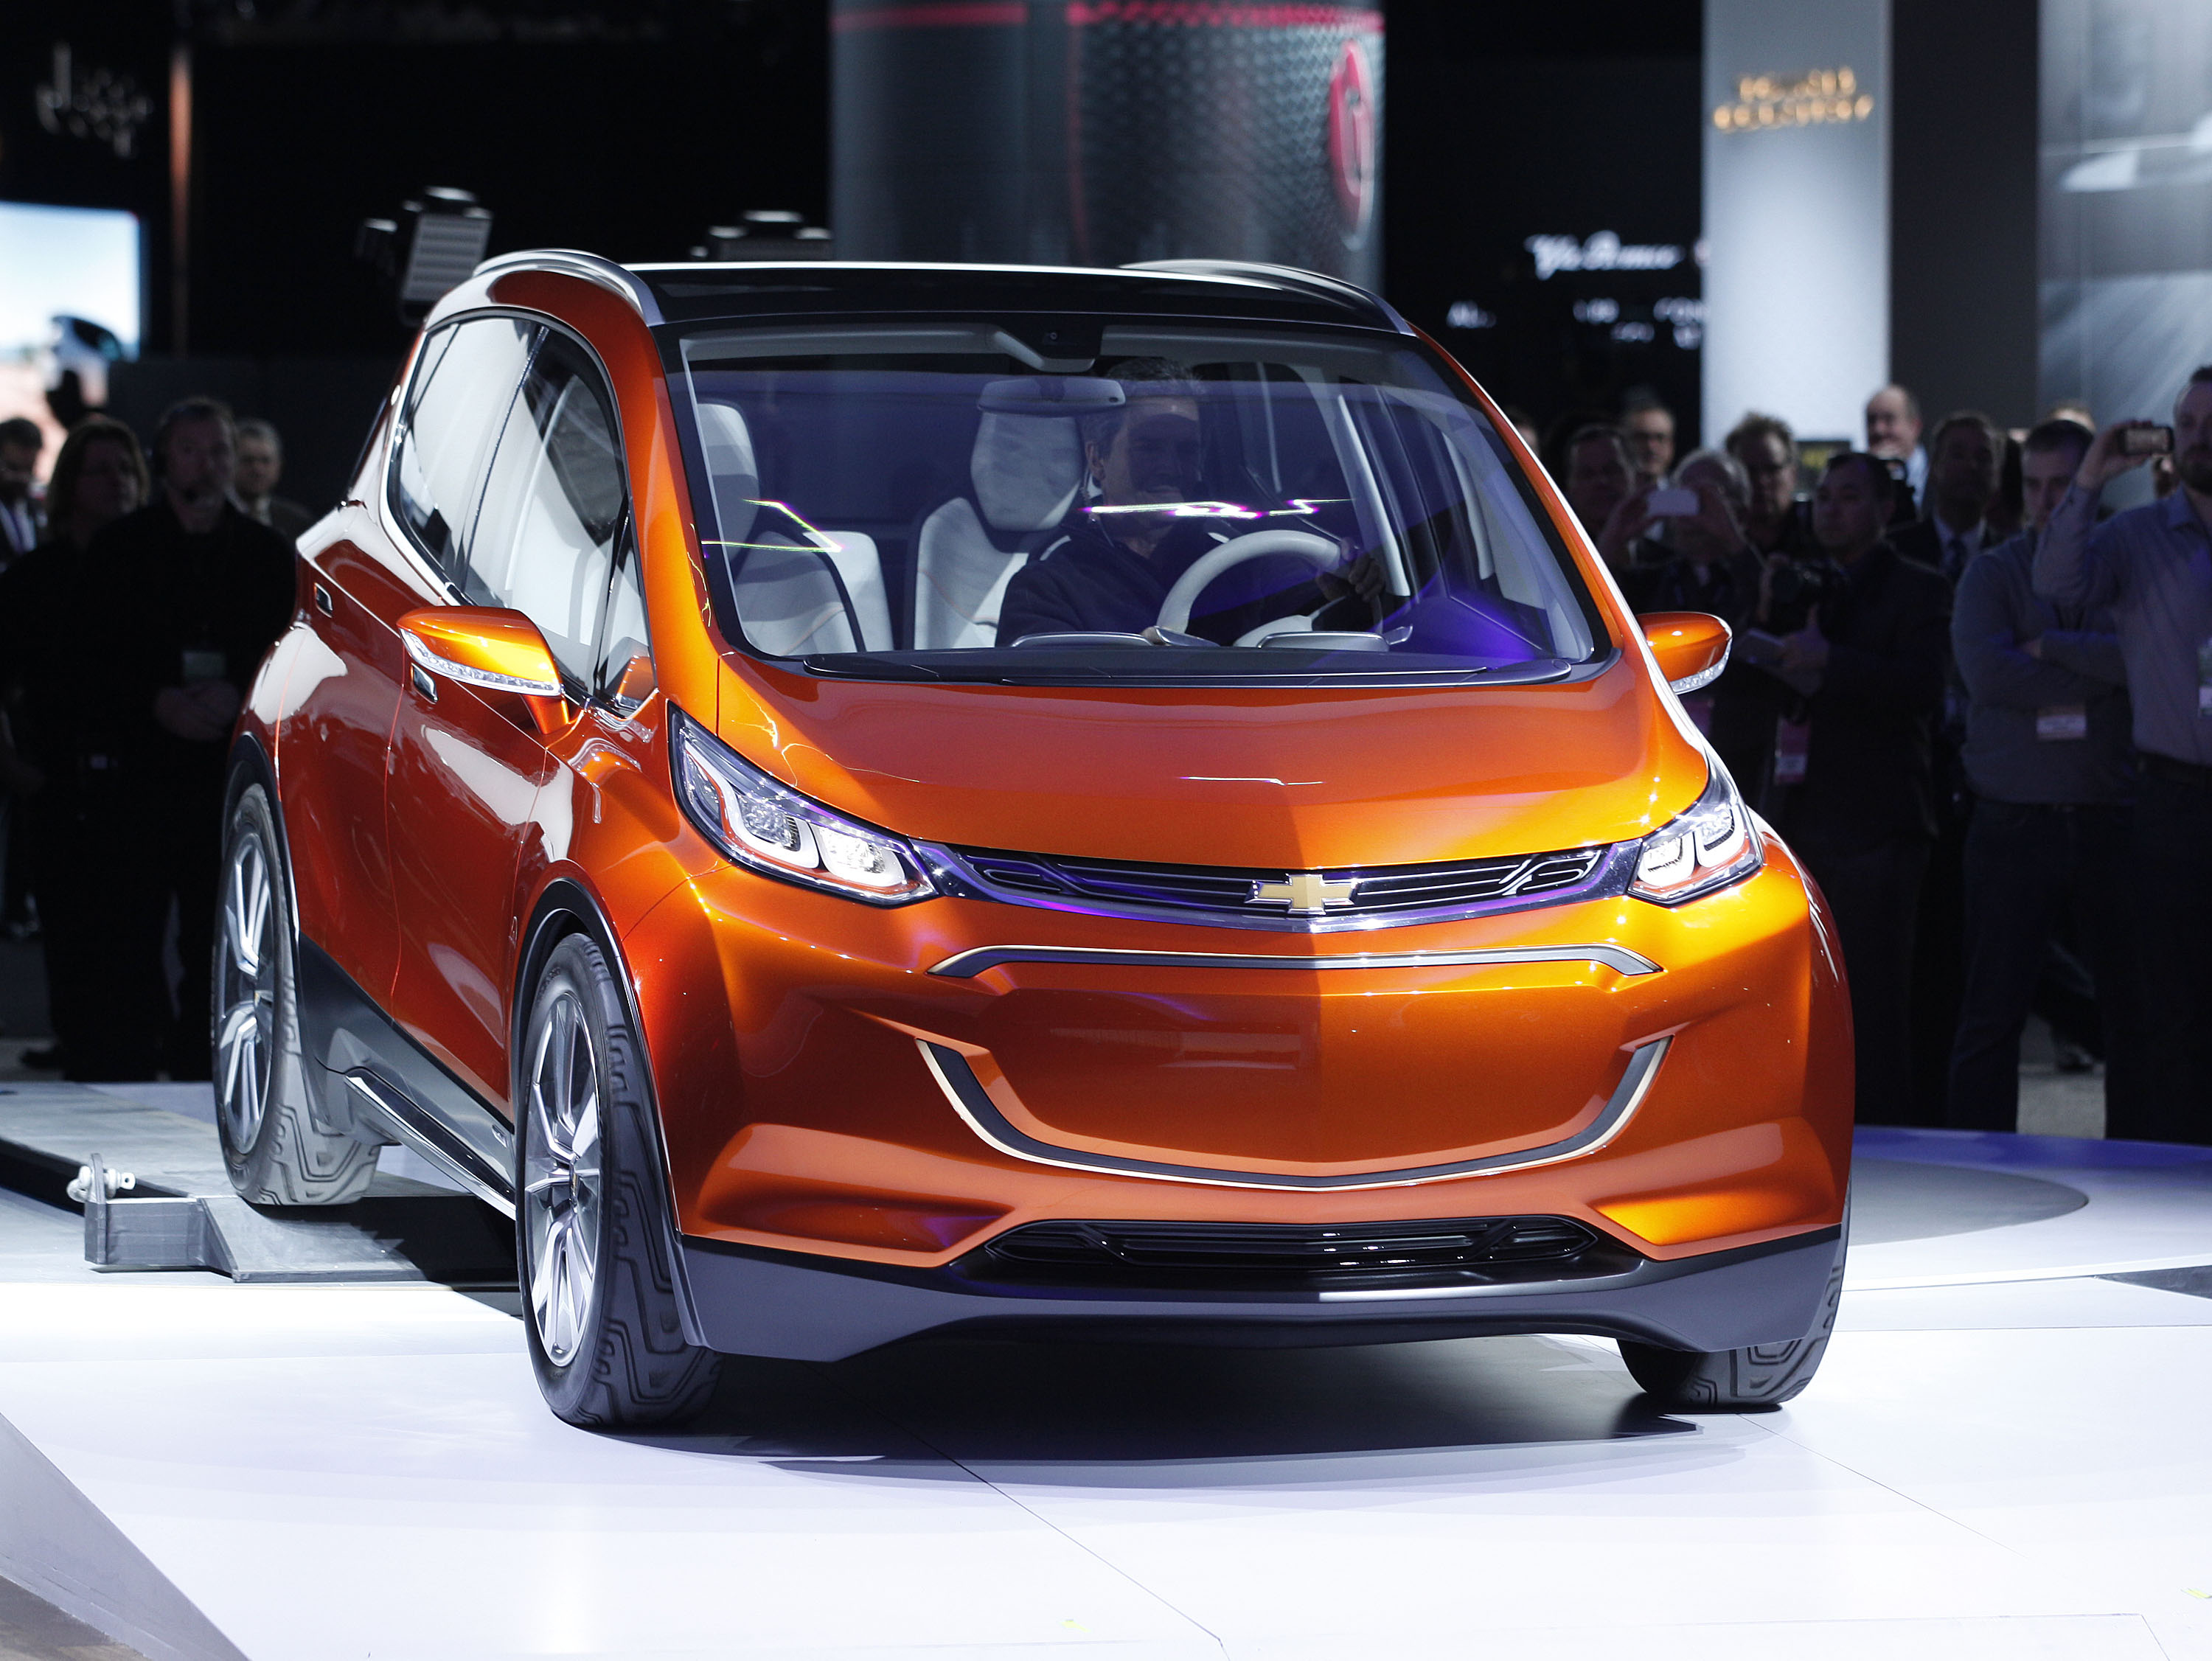 General Motors reveals the new Chevrolet Bolt concept to the media at the 2015 North American International Auto Show on January 12, 2015 in Detroit, Michigan.